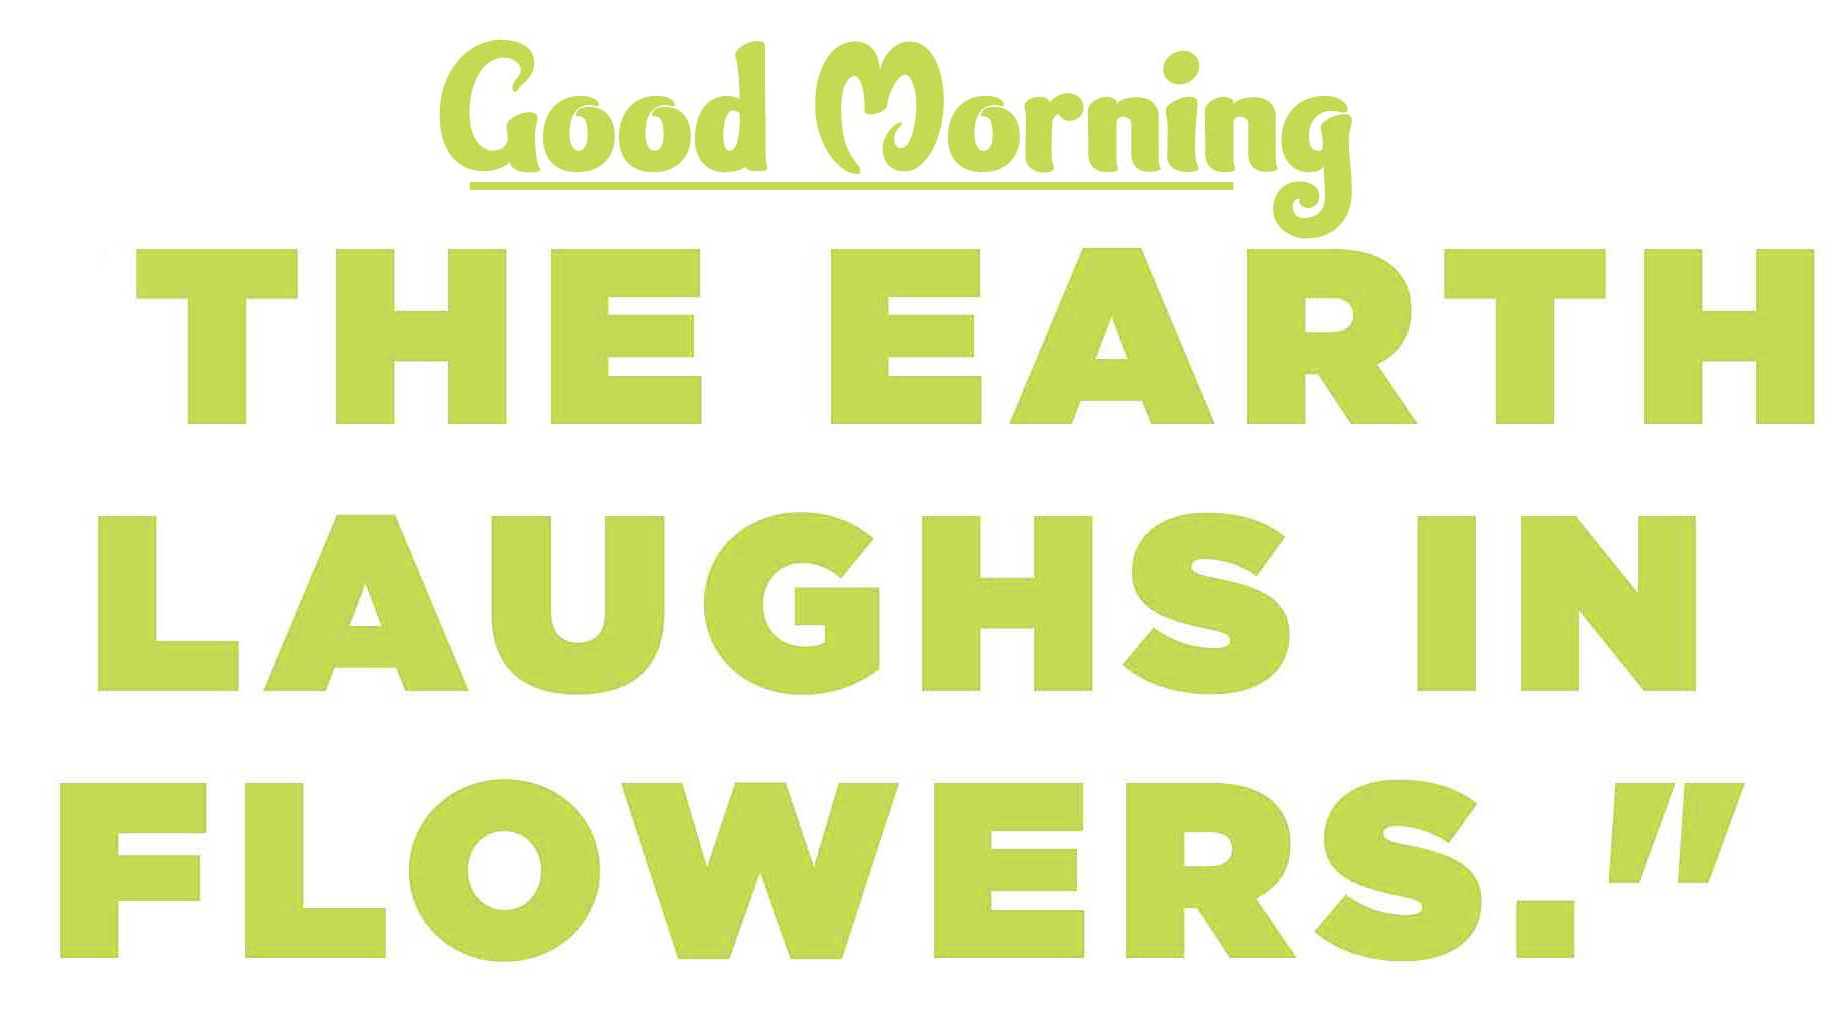 Good Morning Wishes Images with positive thoughts Pics New Download Free